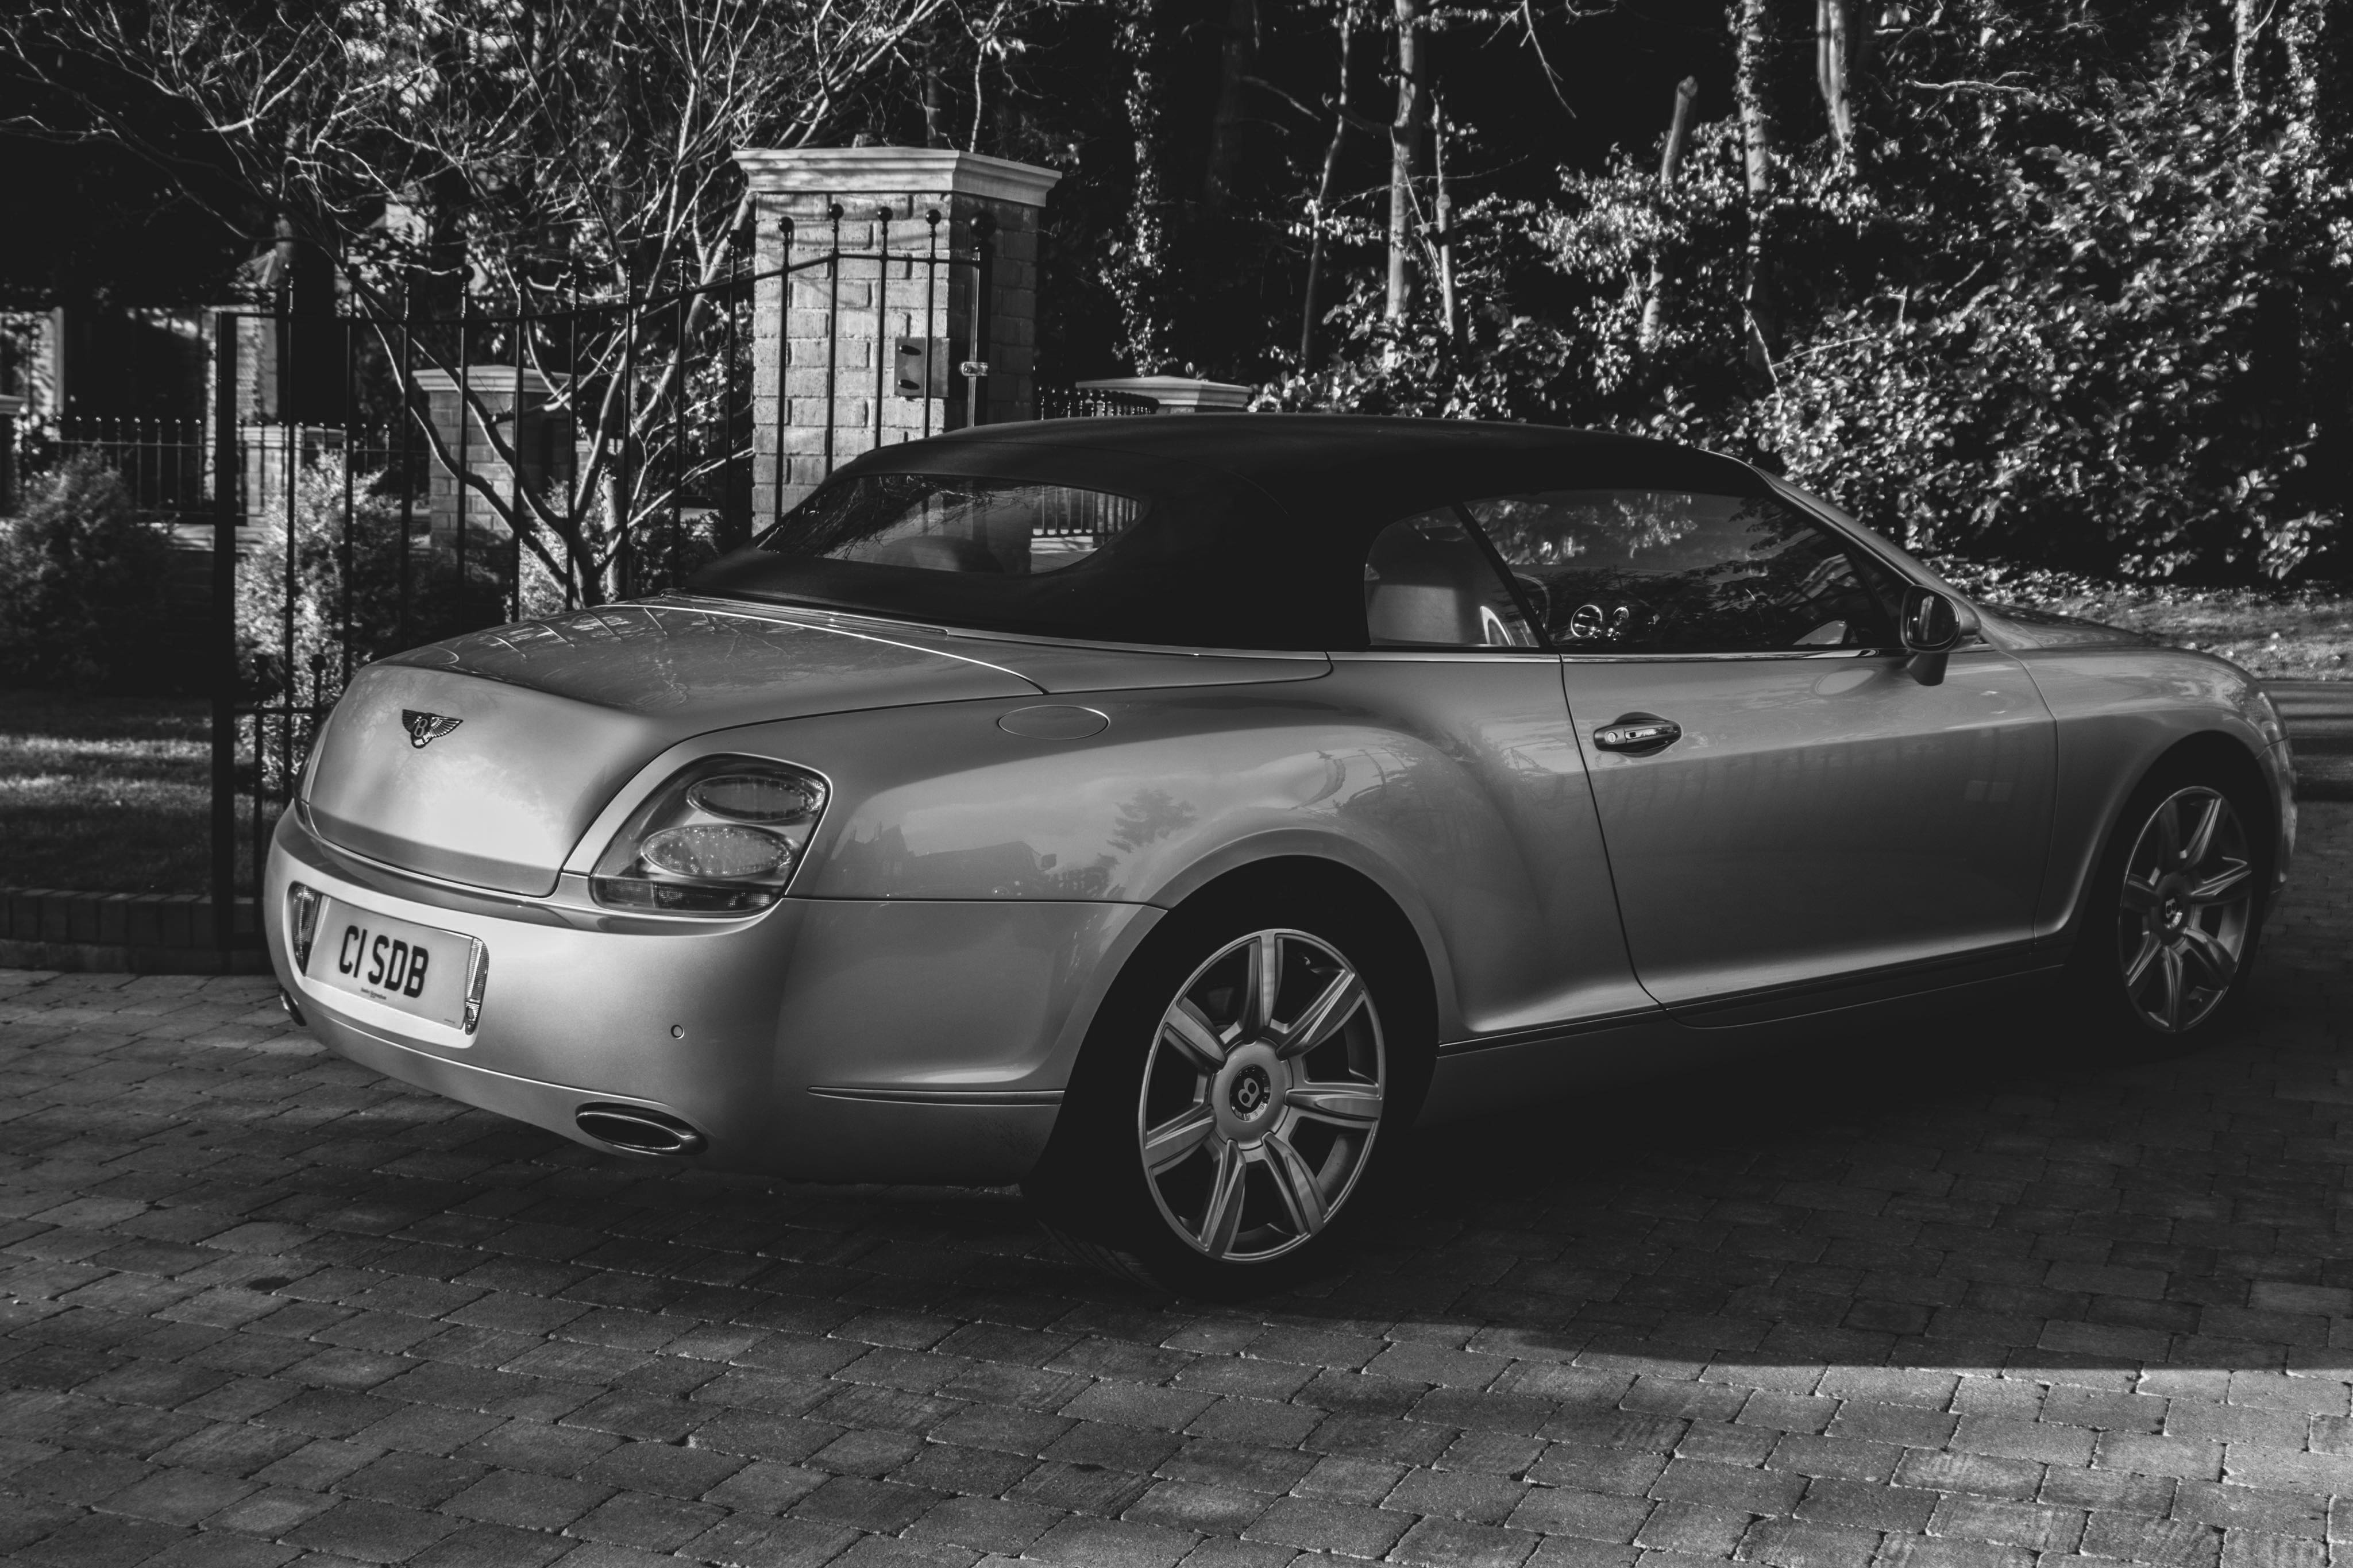 Black and white image of a Bentley GTC